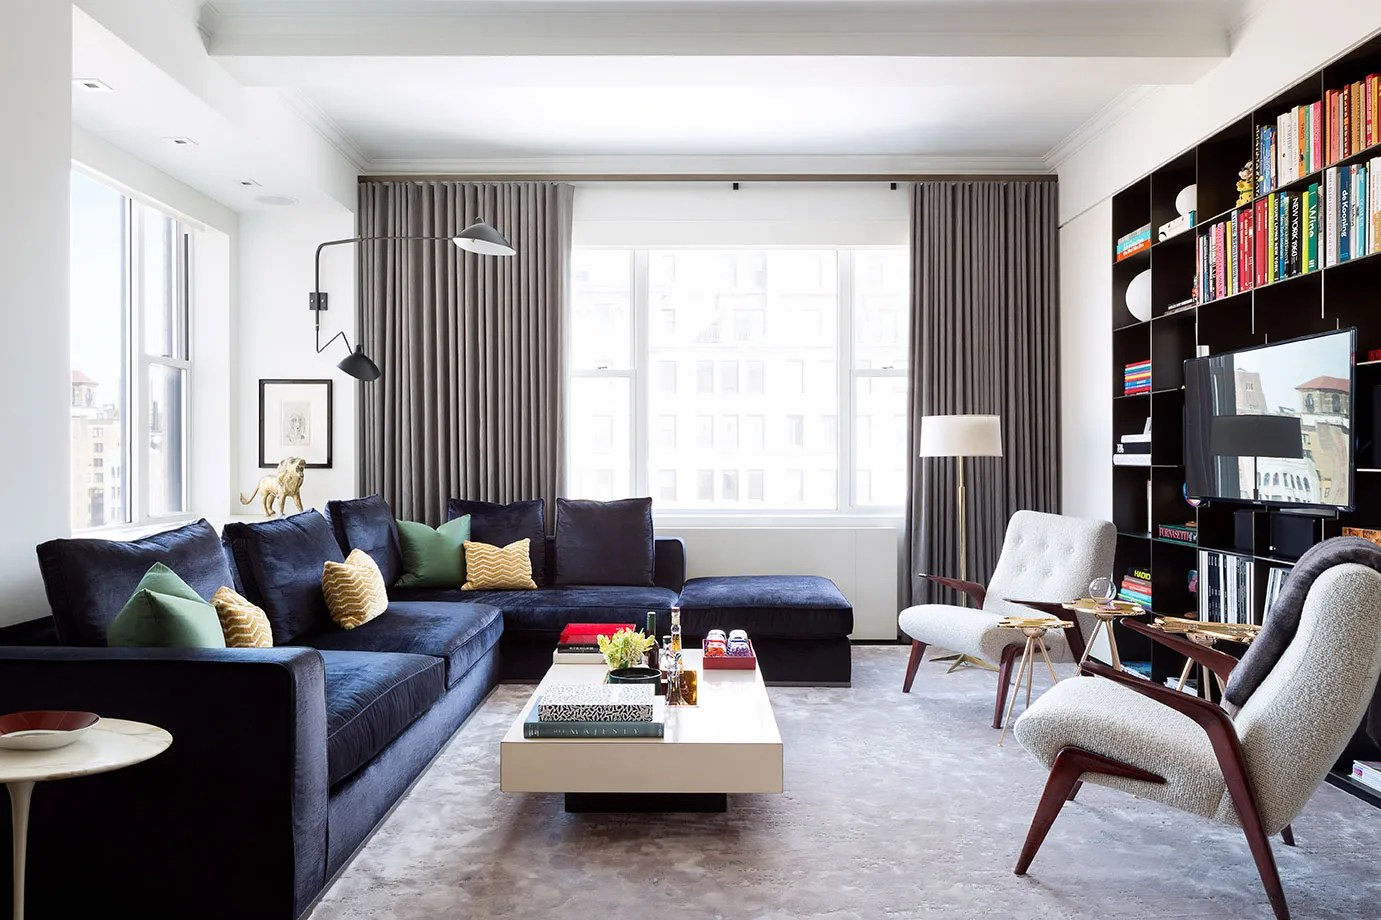 Apartments For Couples Tour A Redesigned Prewar New York Apartment Architectural Digest